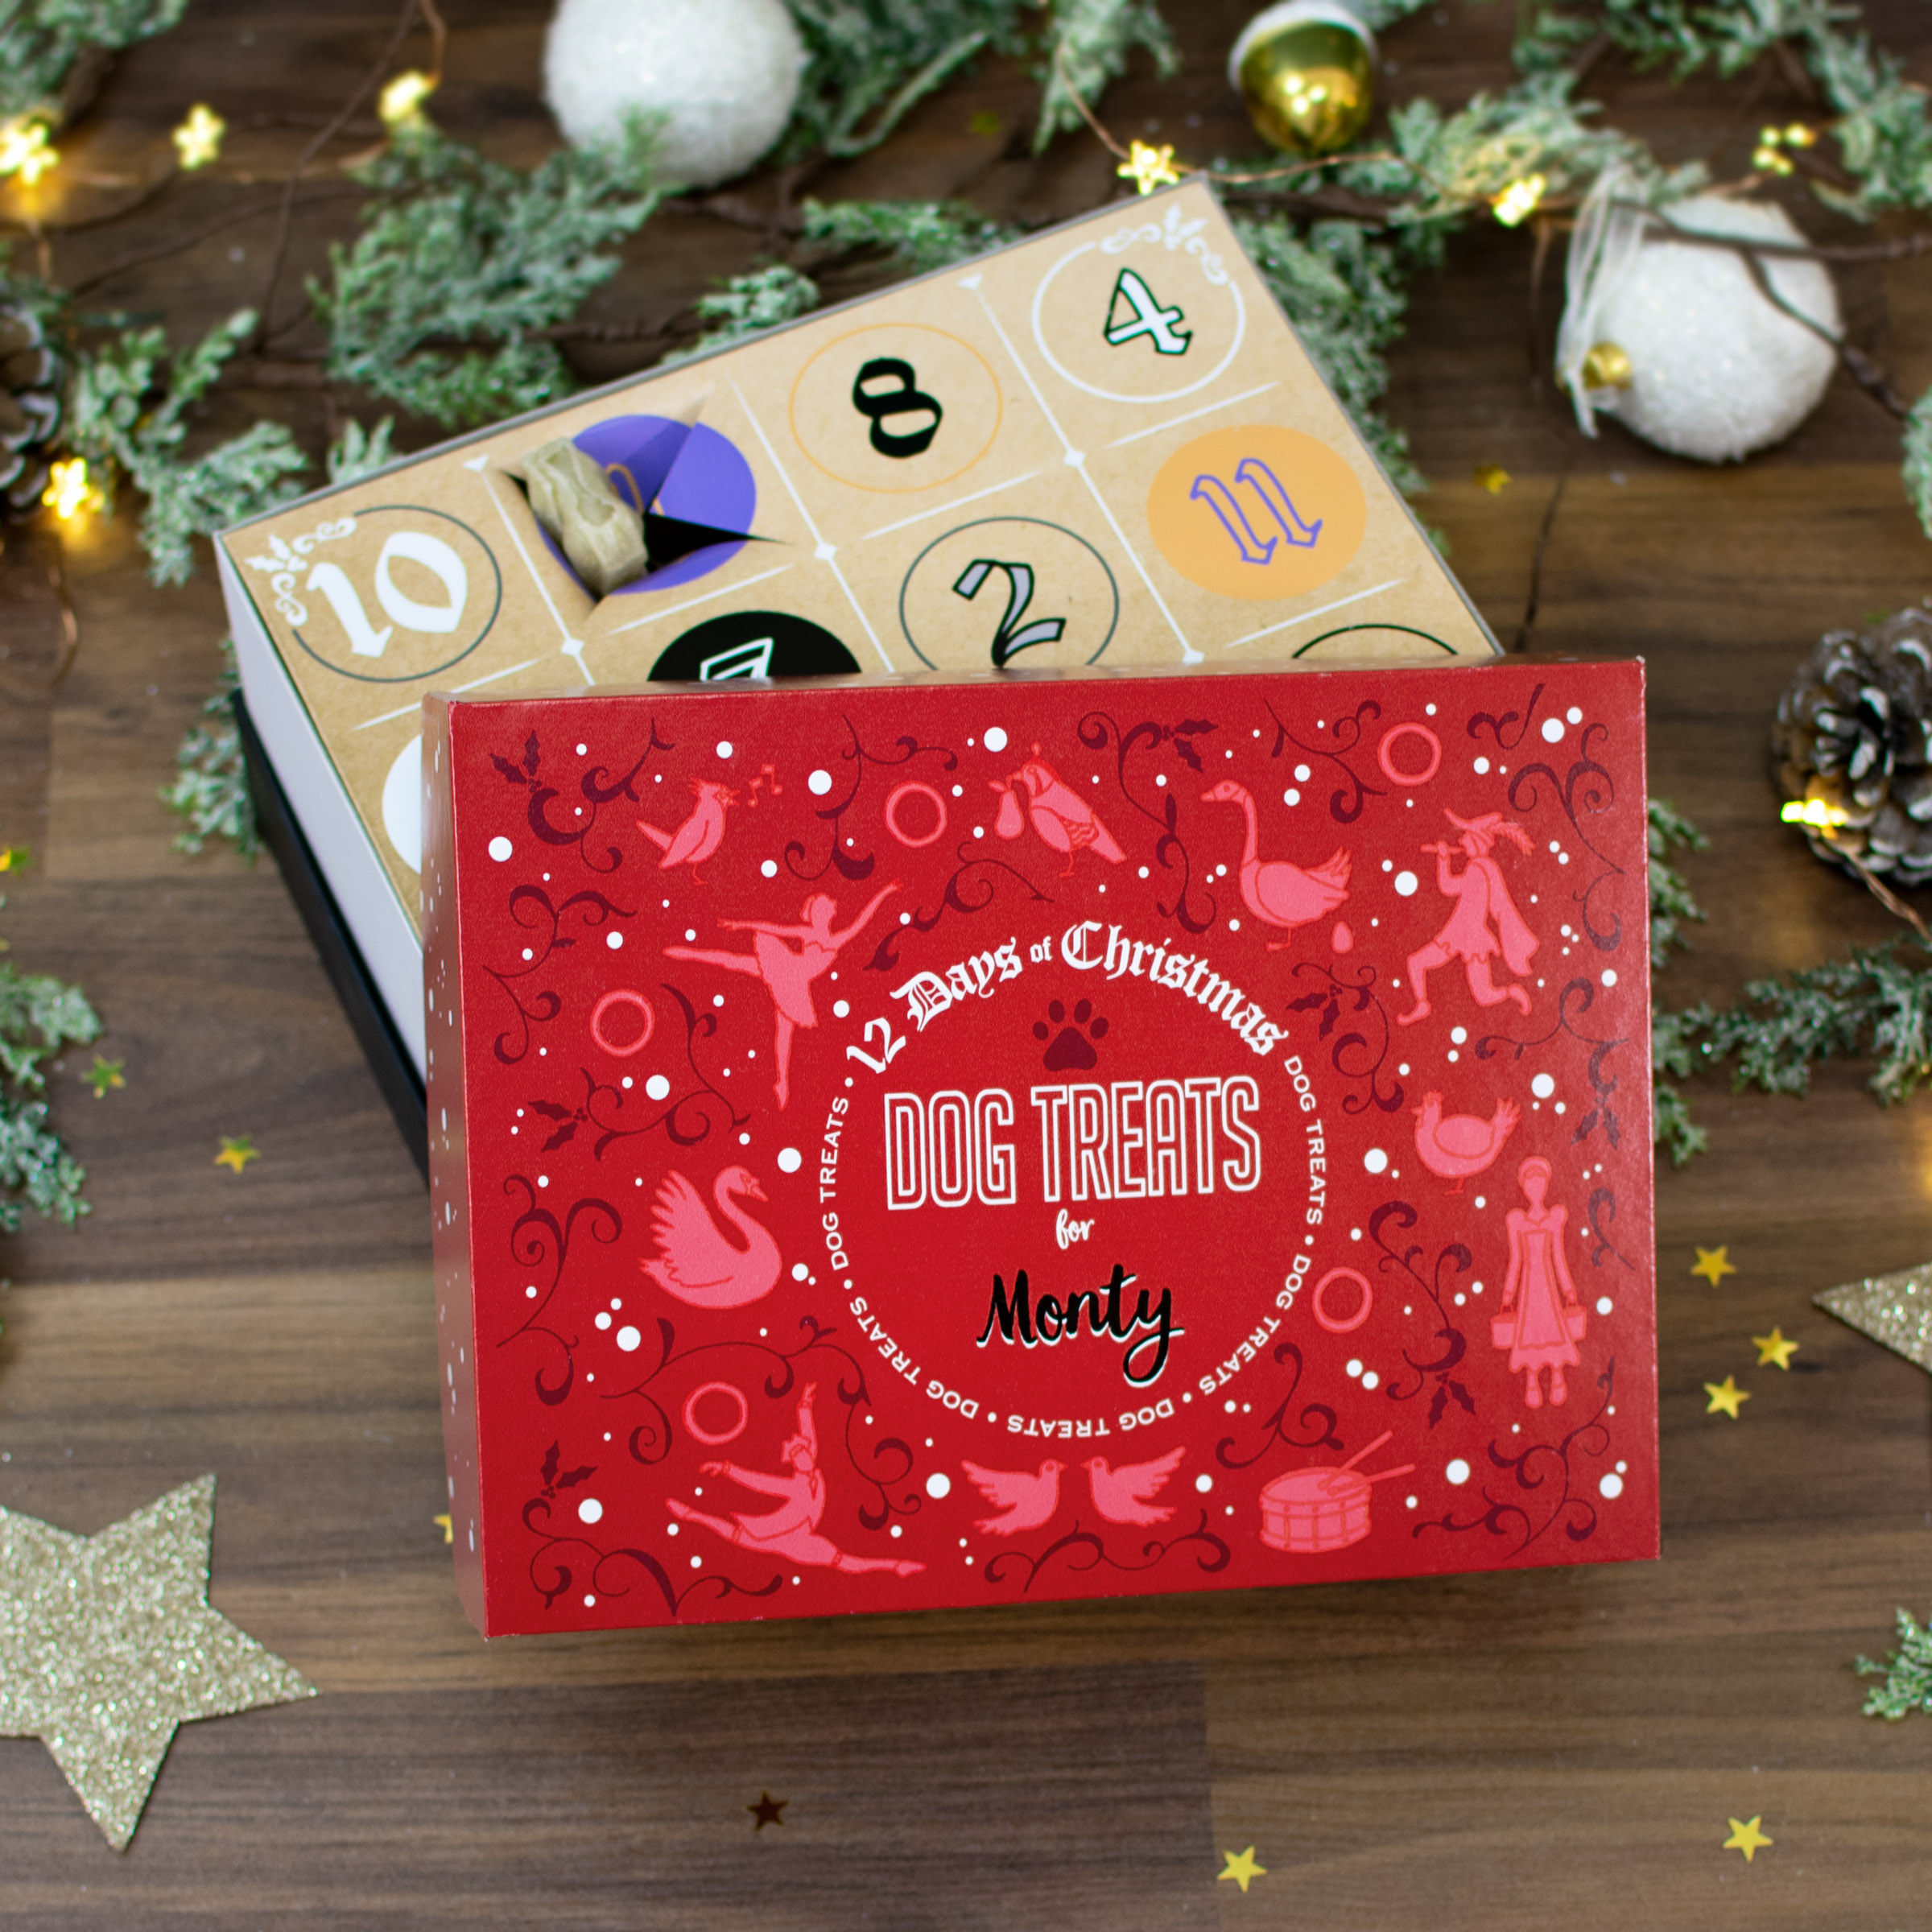 12 Days Of Christmas.12 Days Of Christmas Gift Box Dog Treats